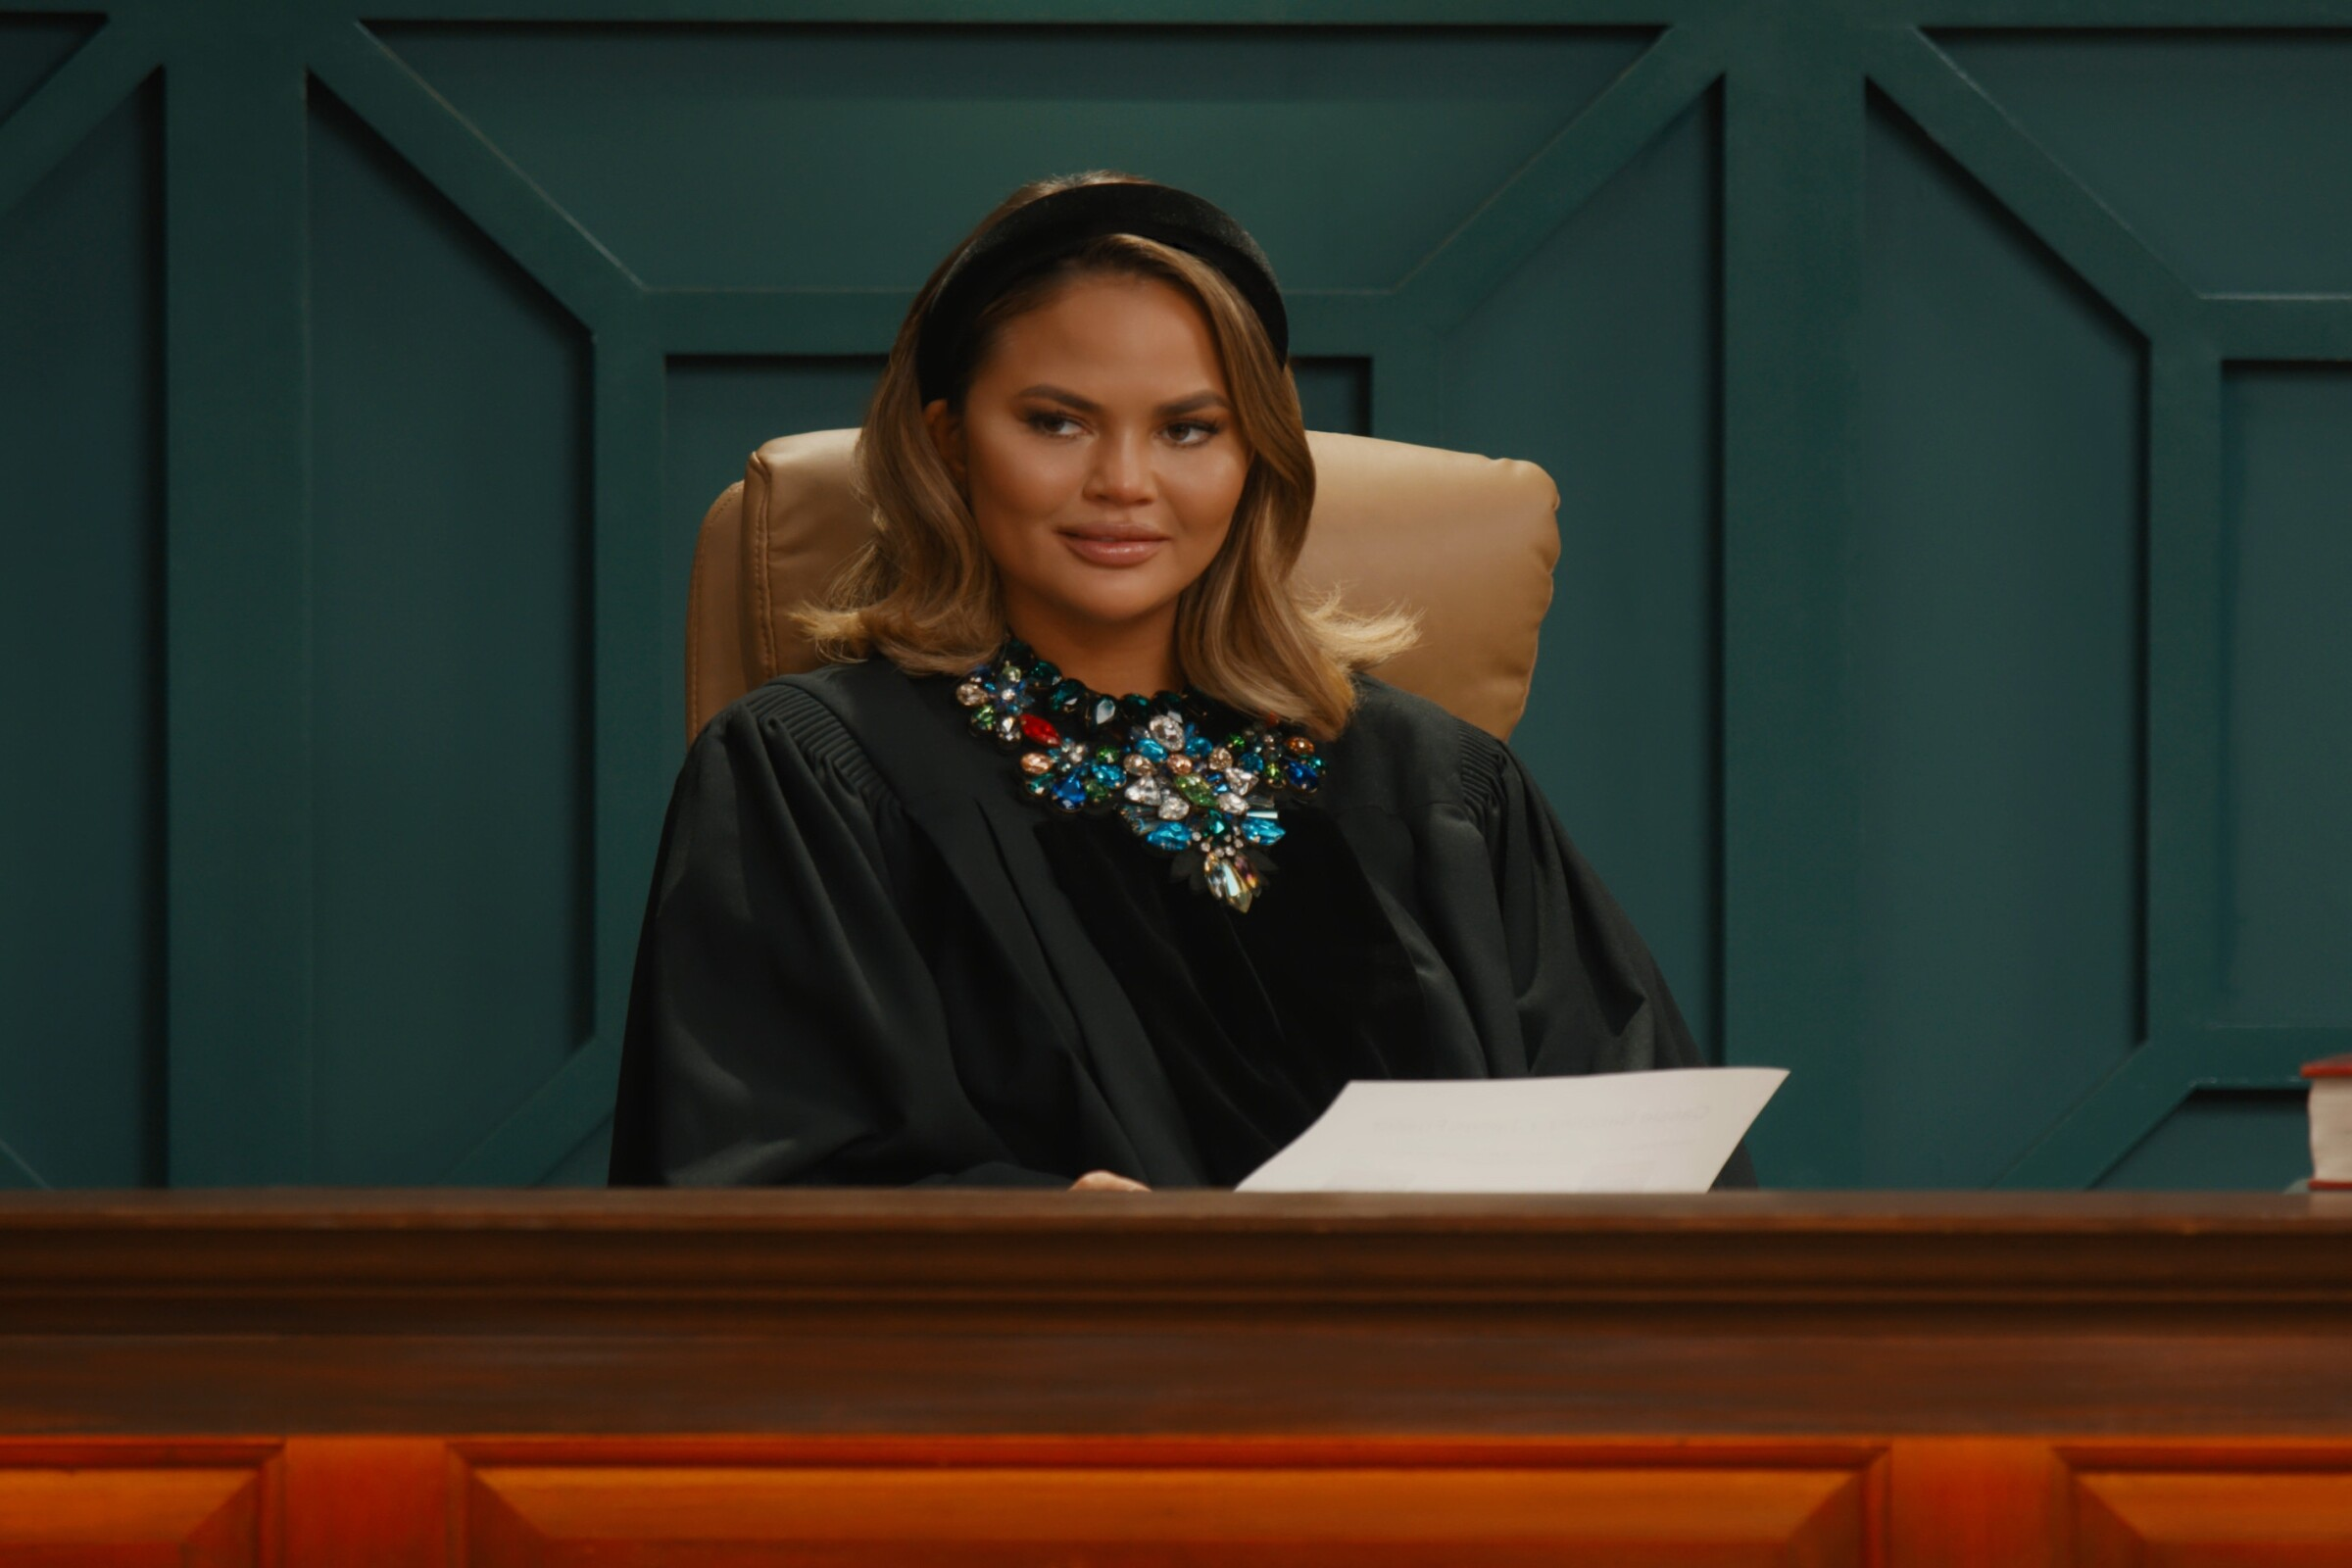 Chrissy Teigen wearing judge's robes at a court-style bench.